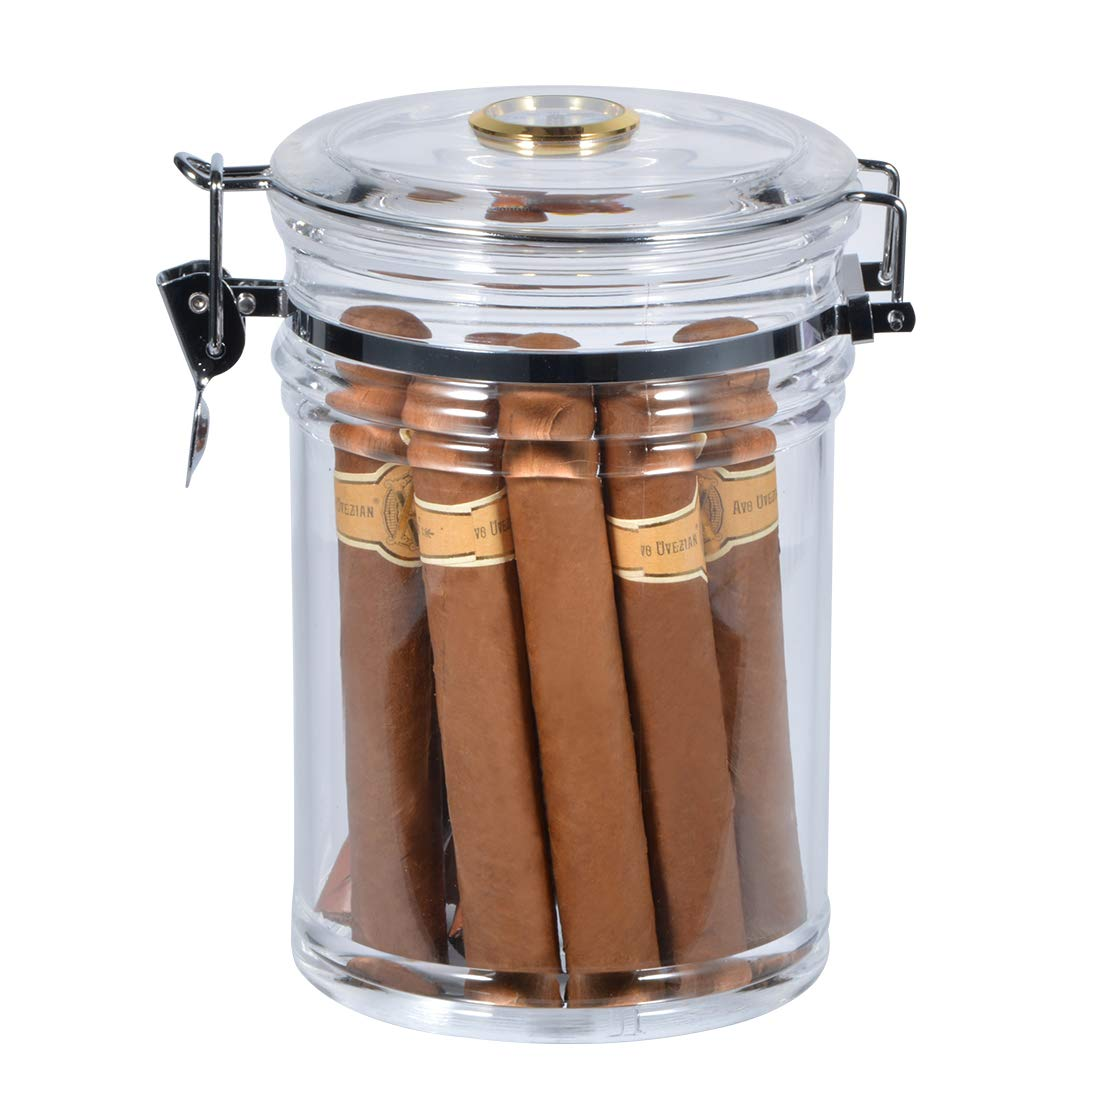 Acrylic Cigar Humidor Jar with Hygrometer, Clear Cigar Storage Container with Airtight Lid, Desktop Tobacco Case Holds About 20 Cigars